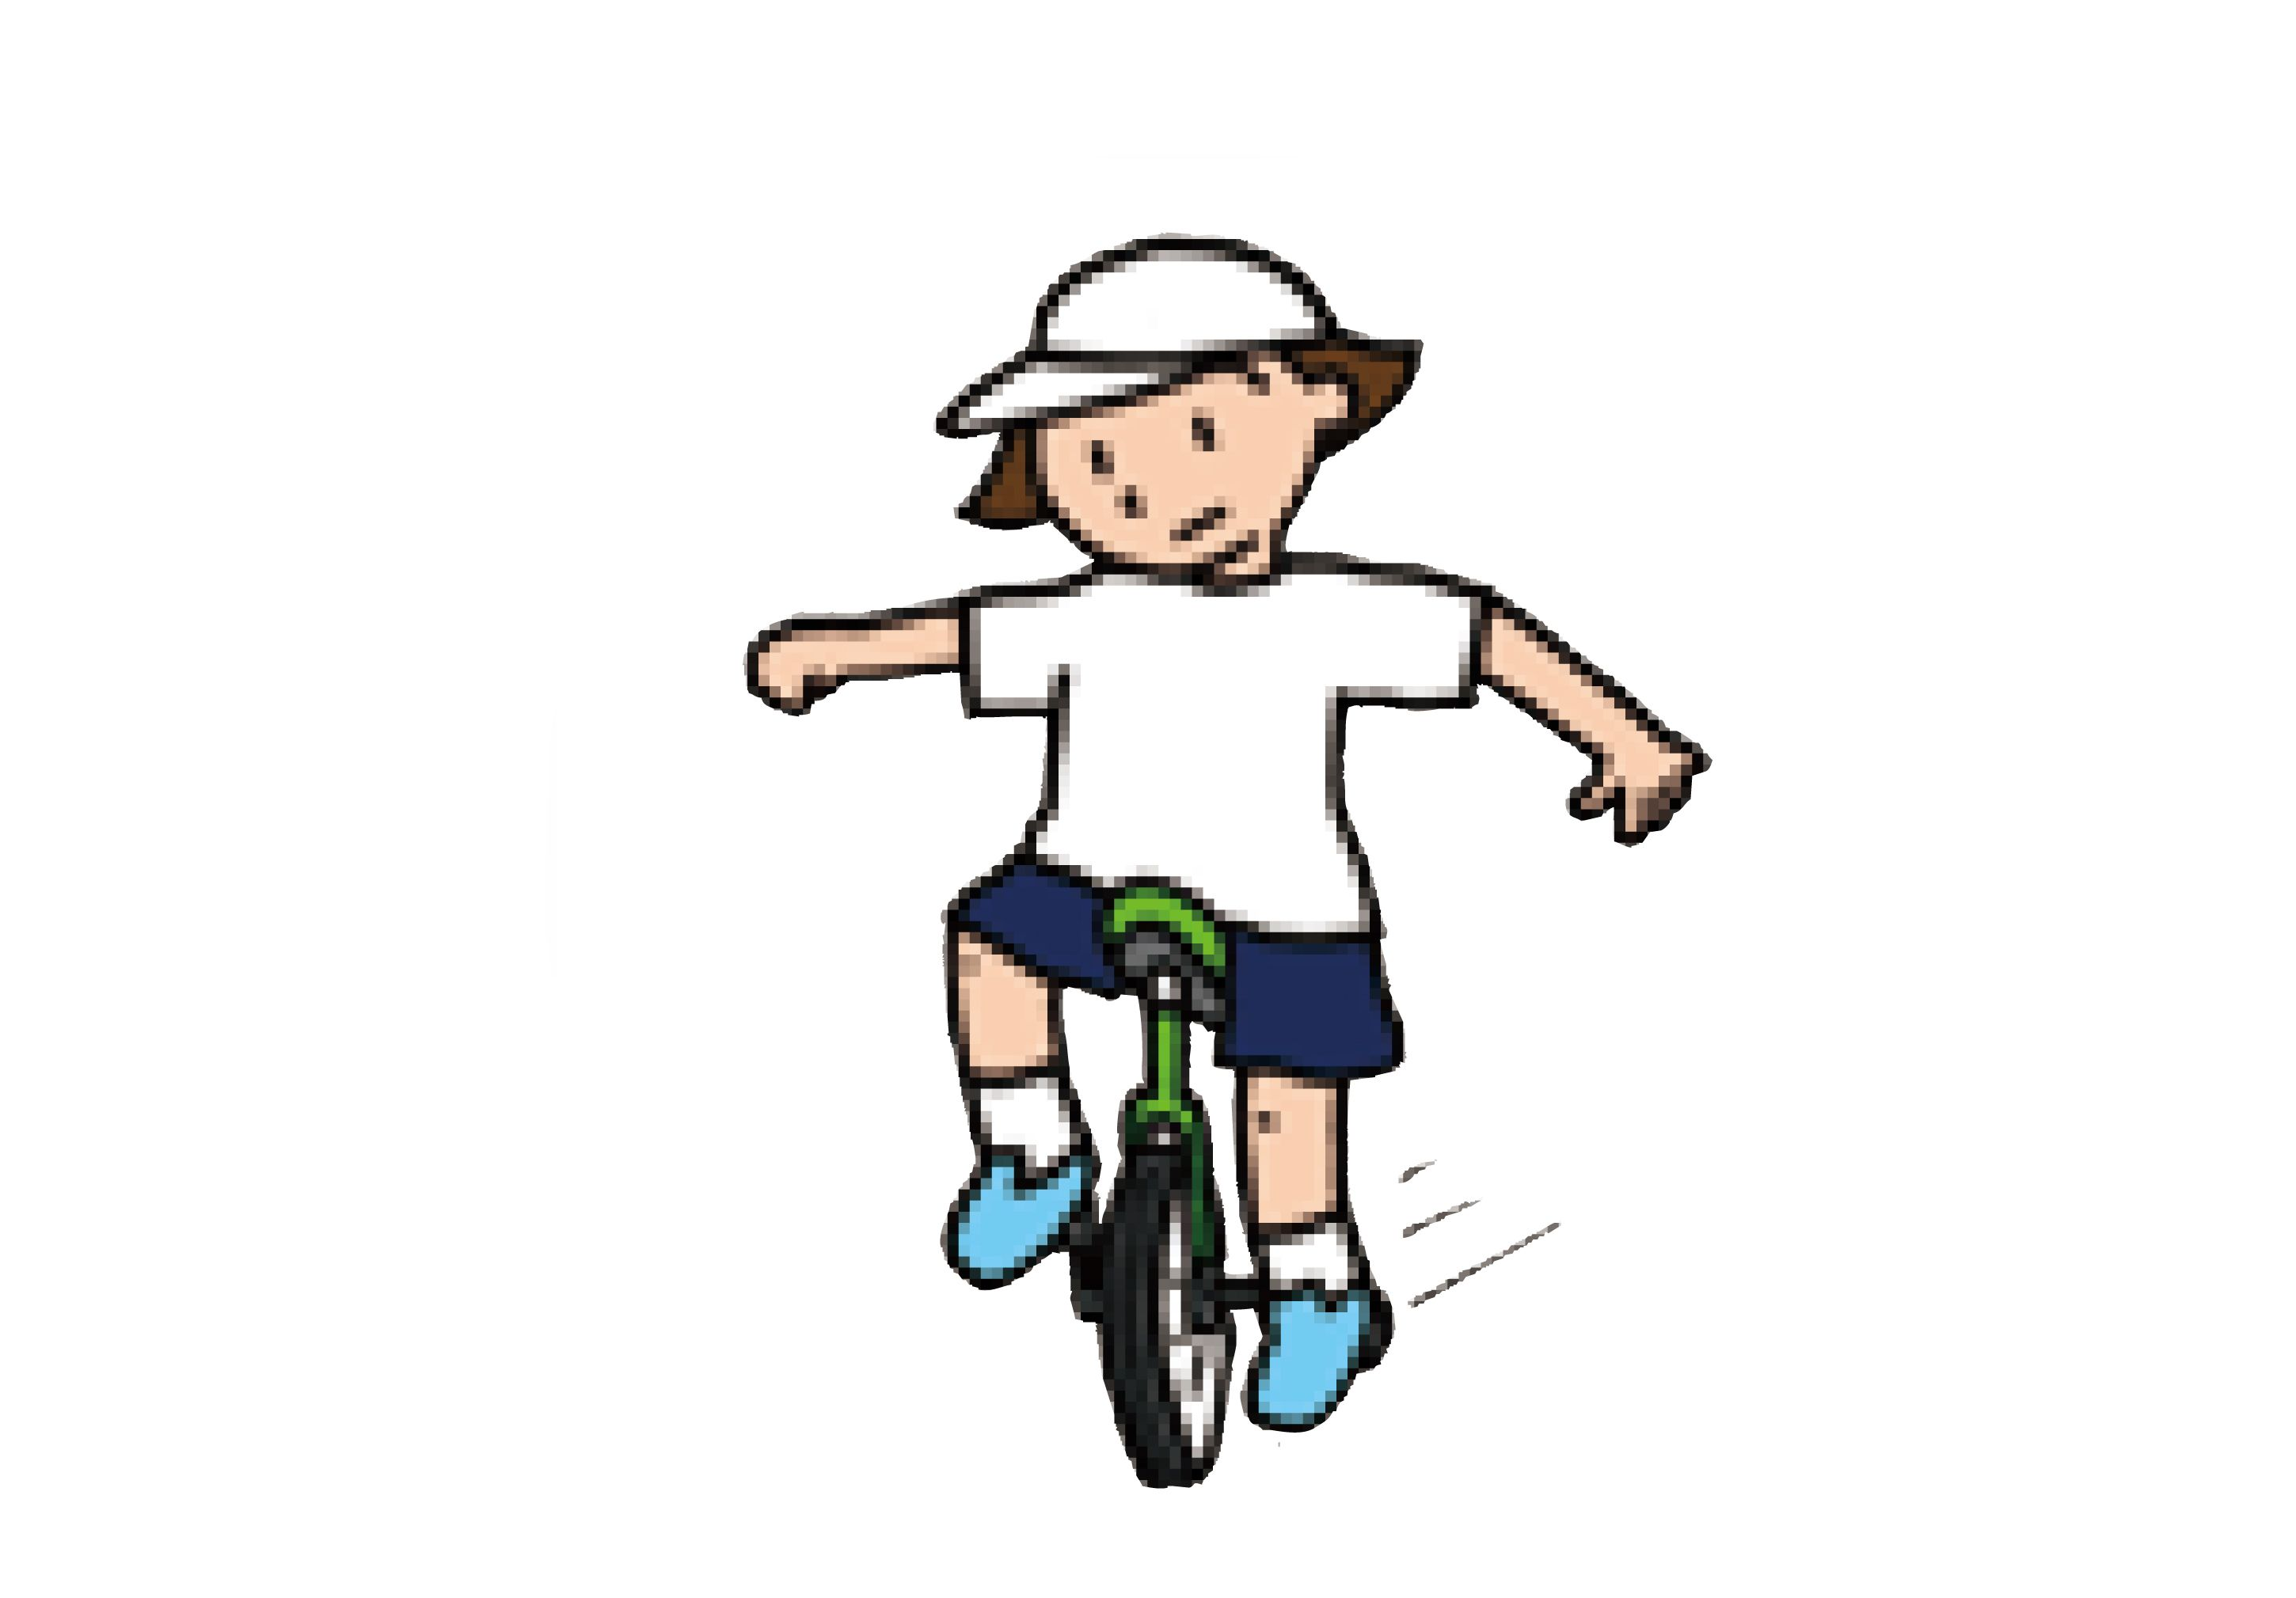 Ride a Unicycle